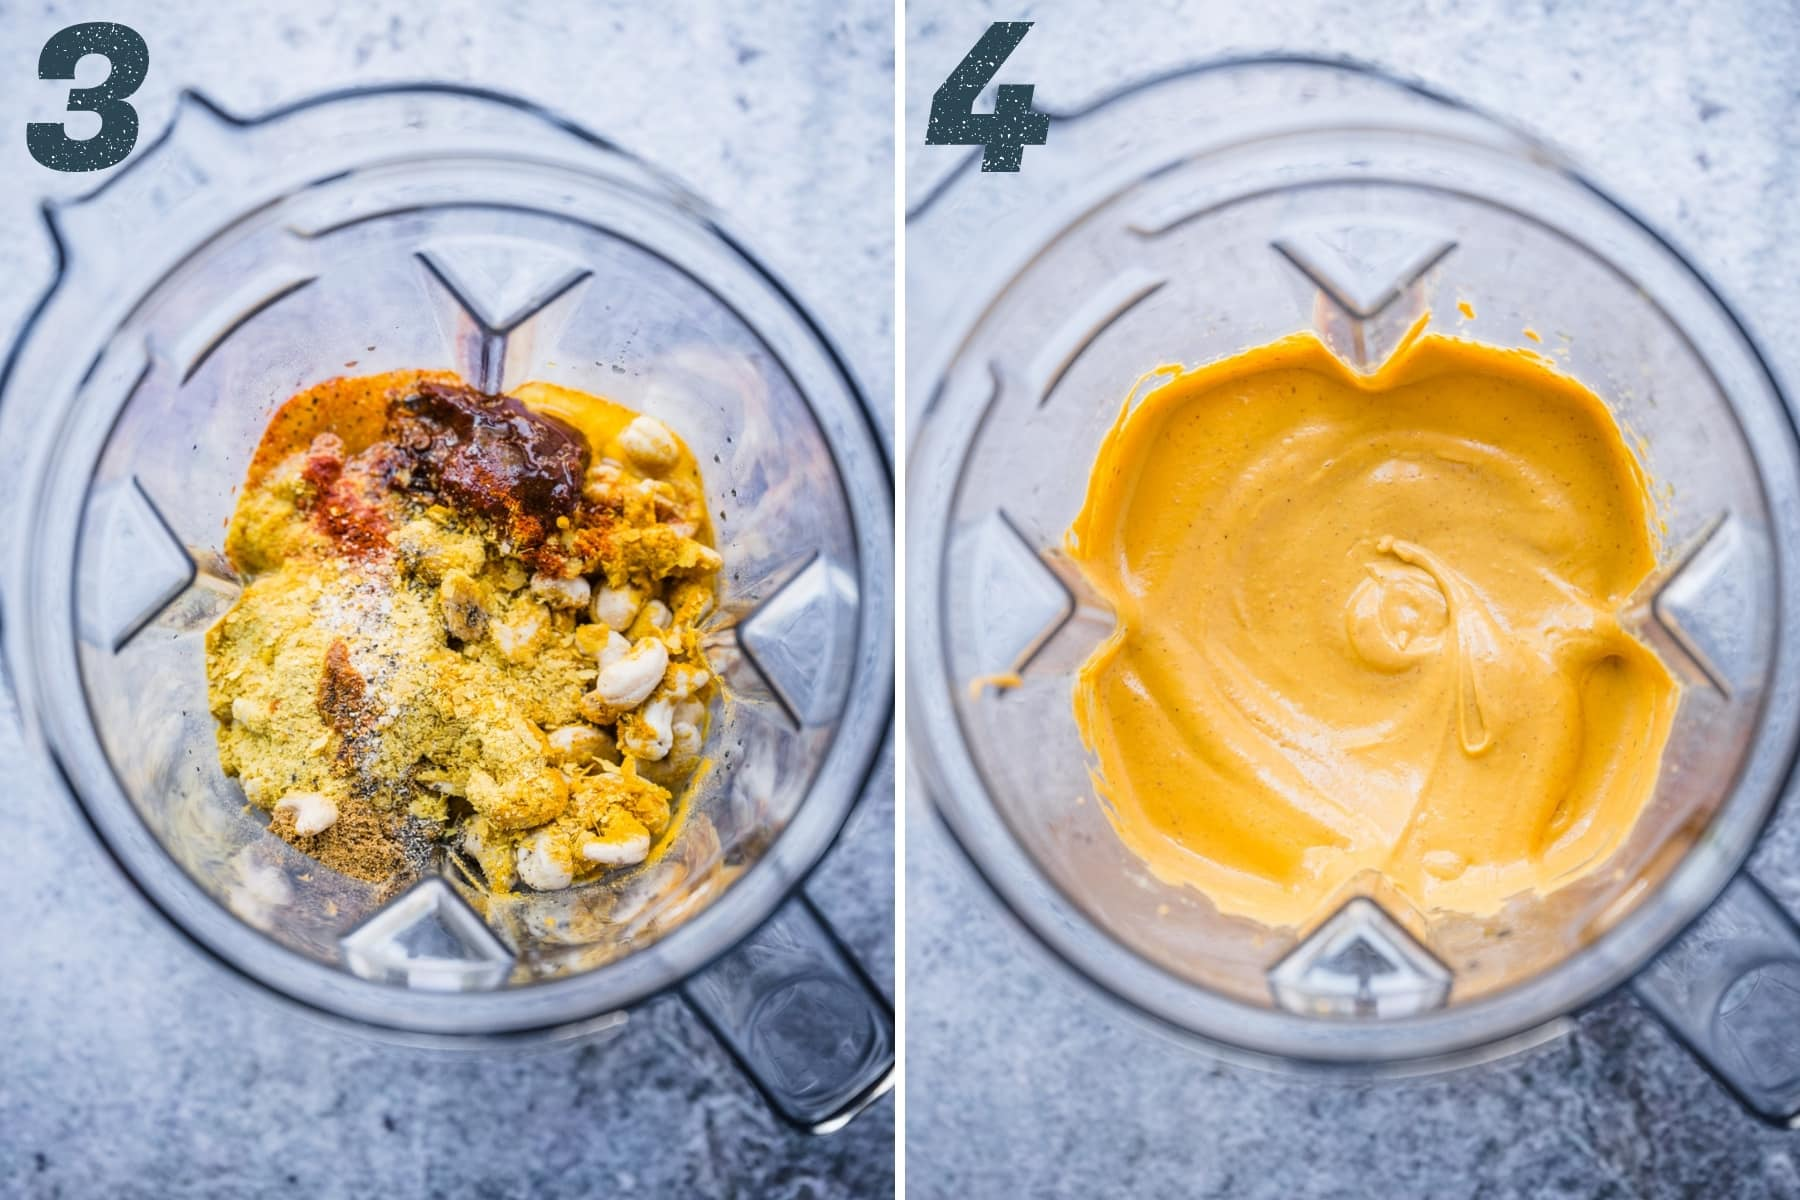 before and after blending ingredients for vegan queso dip.